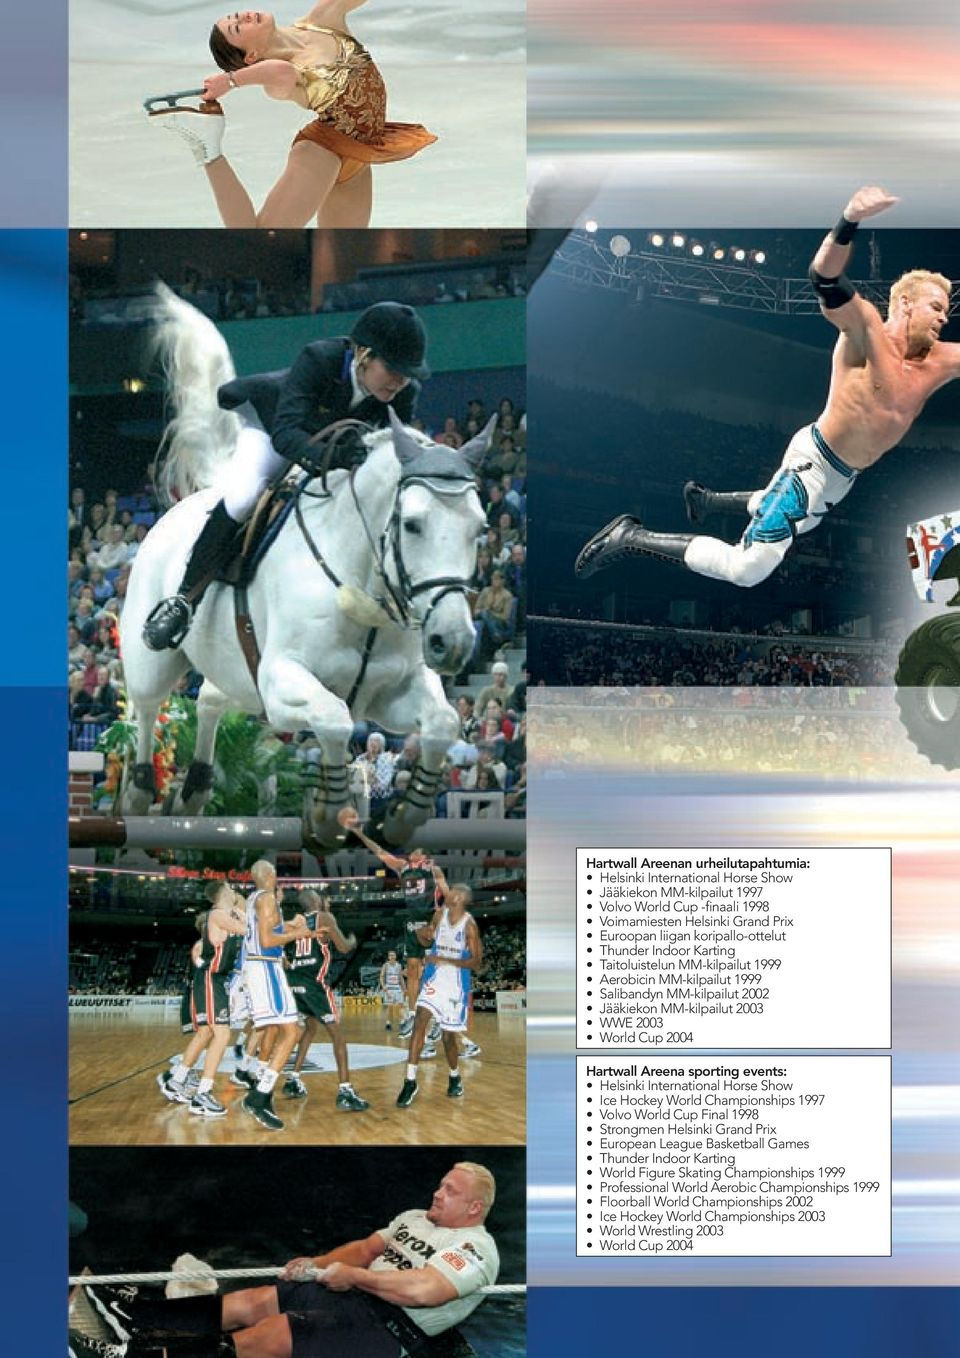 Areena sporting events: Helsinki International Horse Show Ice Hockey World Championships 1997 Volvo World Cup Final 1998 Strongmen Helsinki Grand Prix European League Basketball Games Thunder